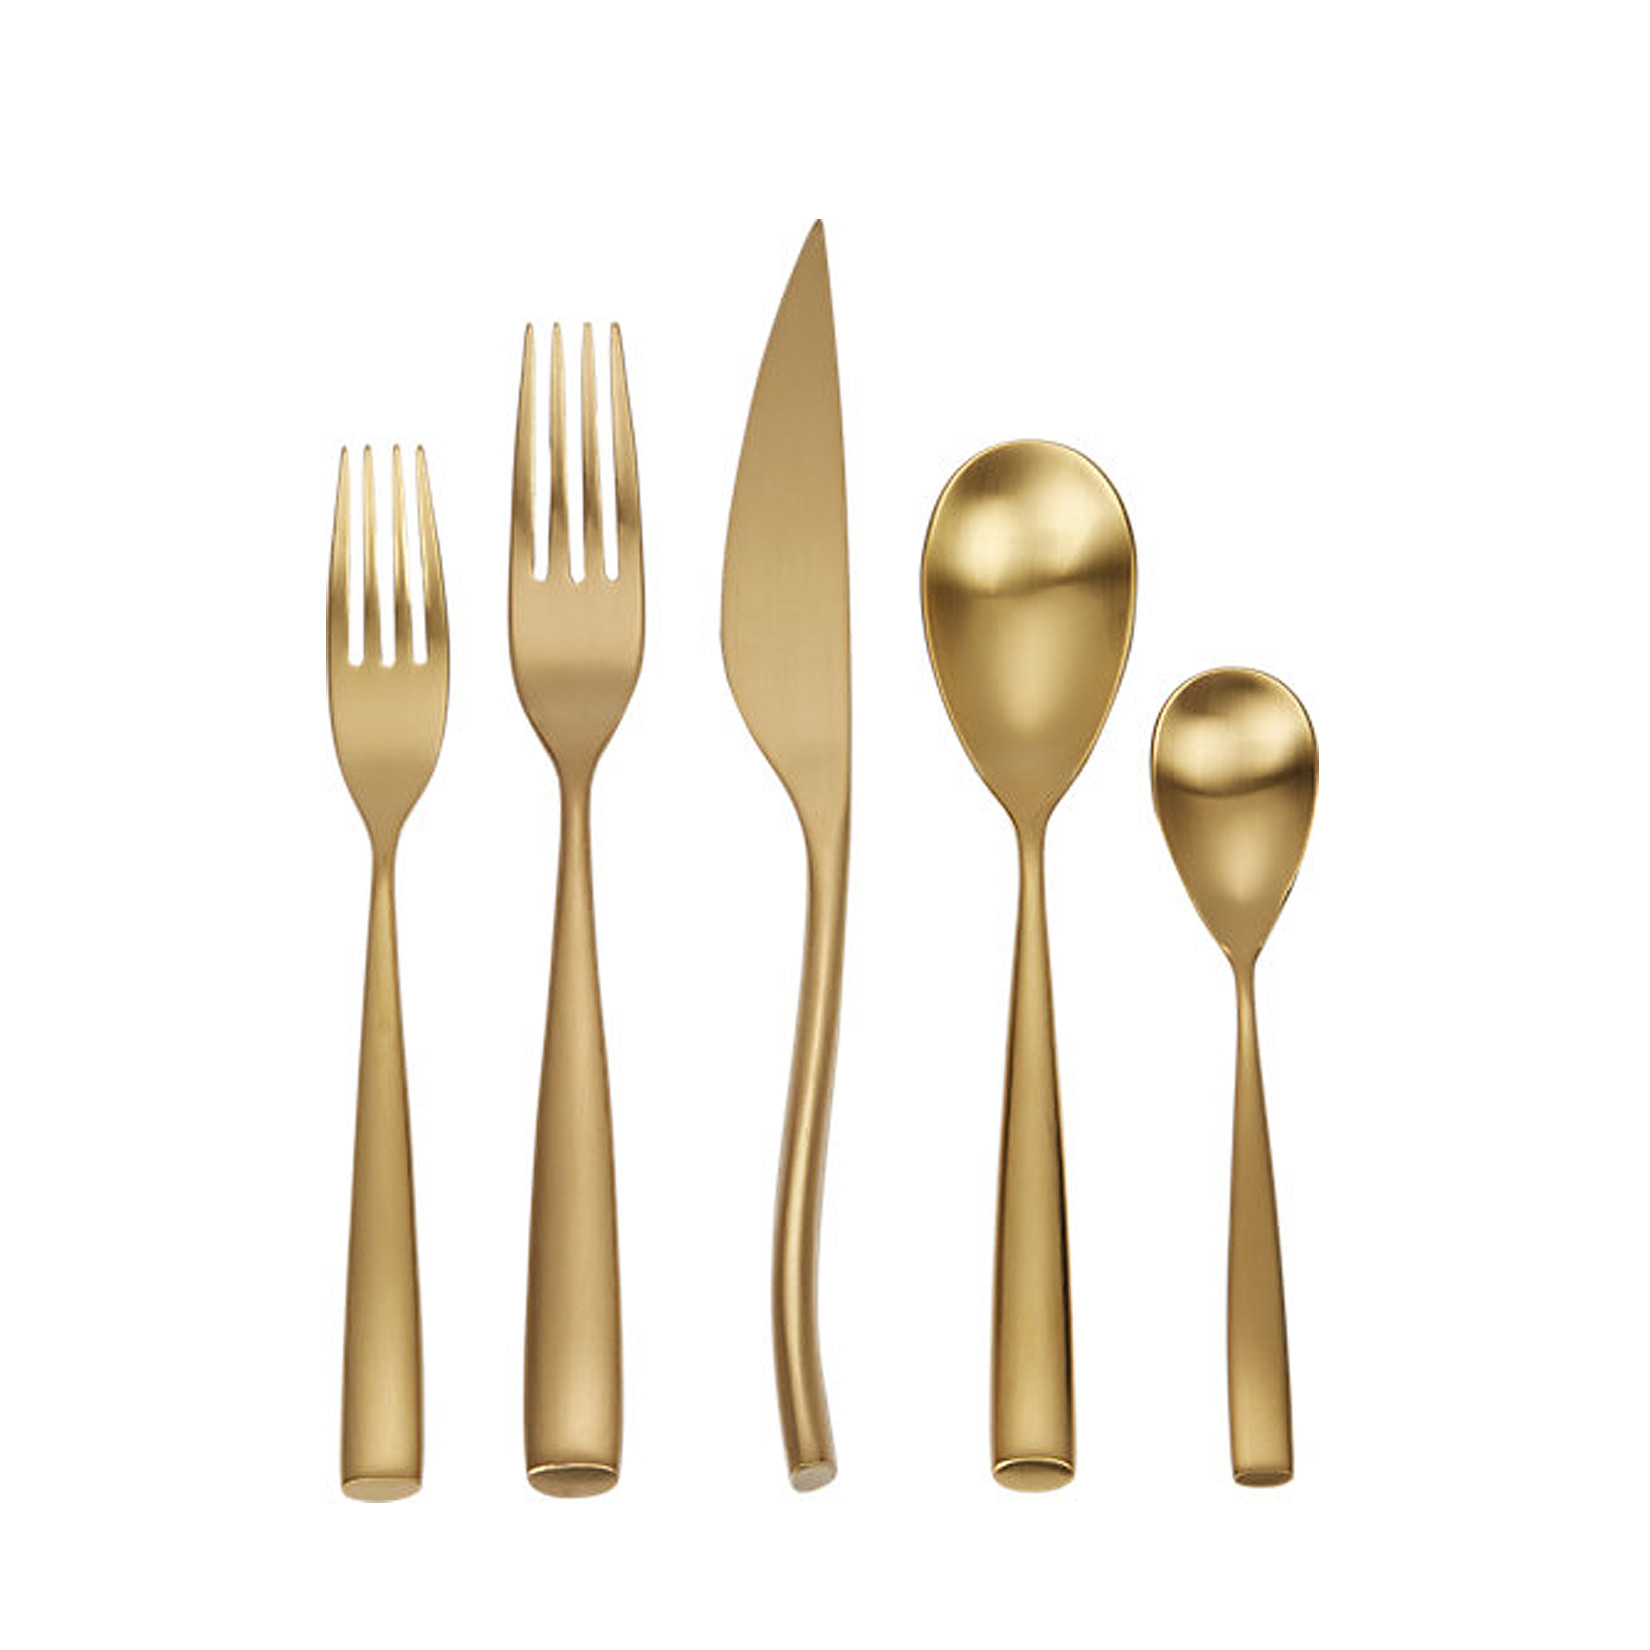 Captivating gold flatware for kitchen and dining sets ideas with gold flatware set